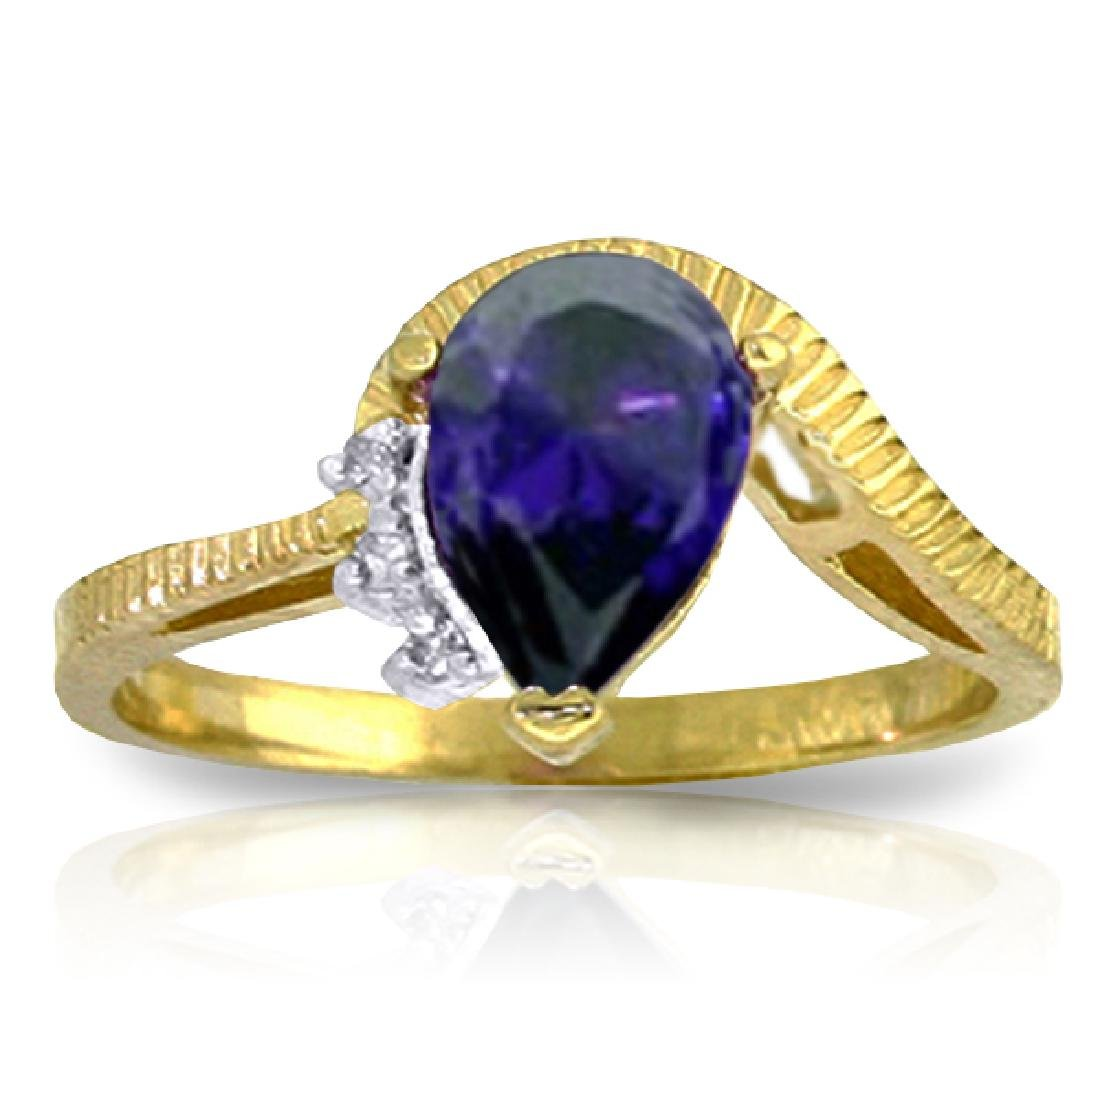 Genuine 1.52 ctw Sapphire & Diamond Ring Jewelry 14KT